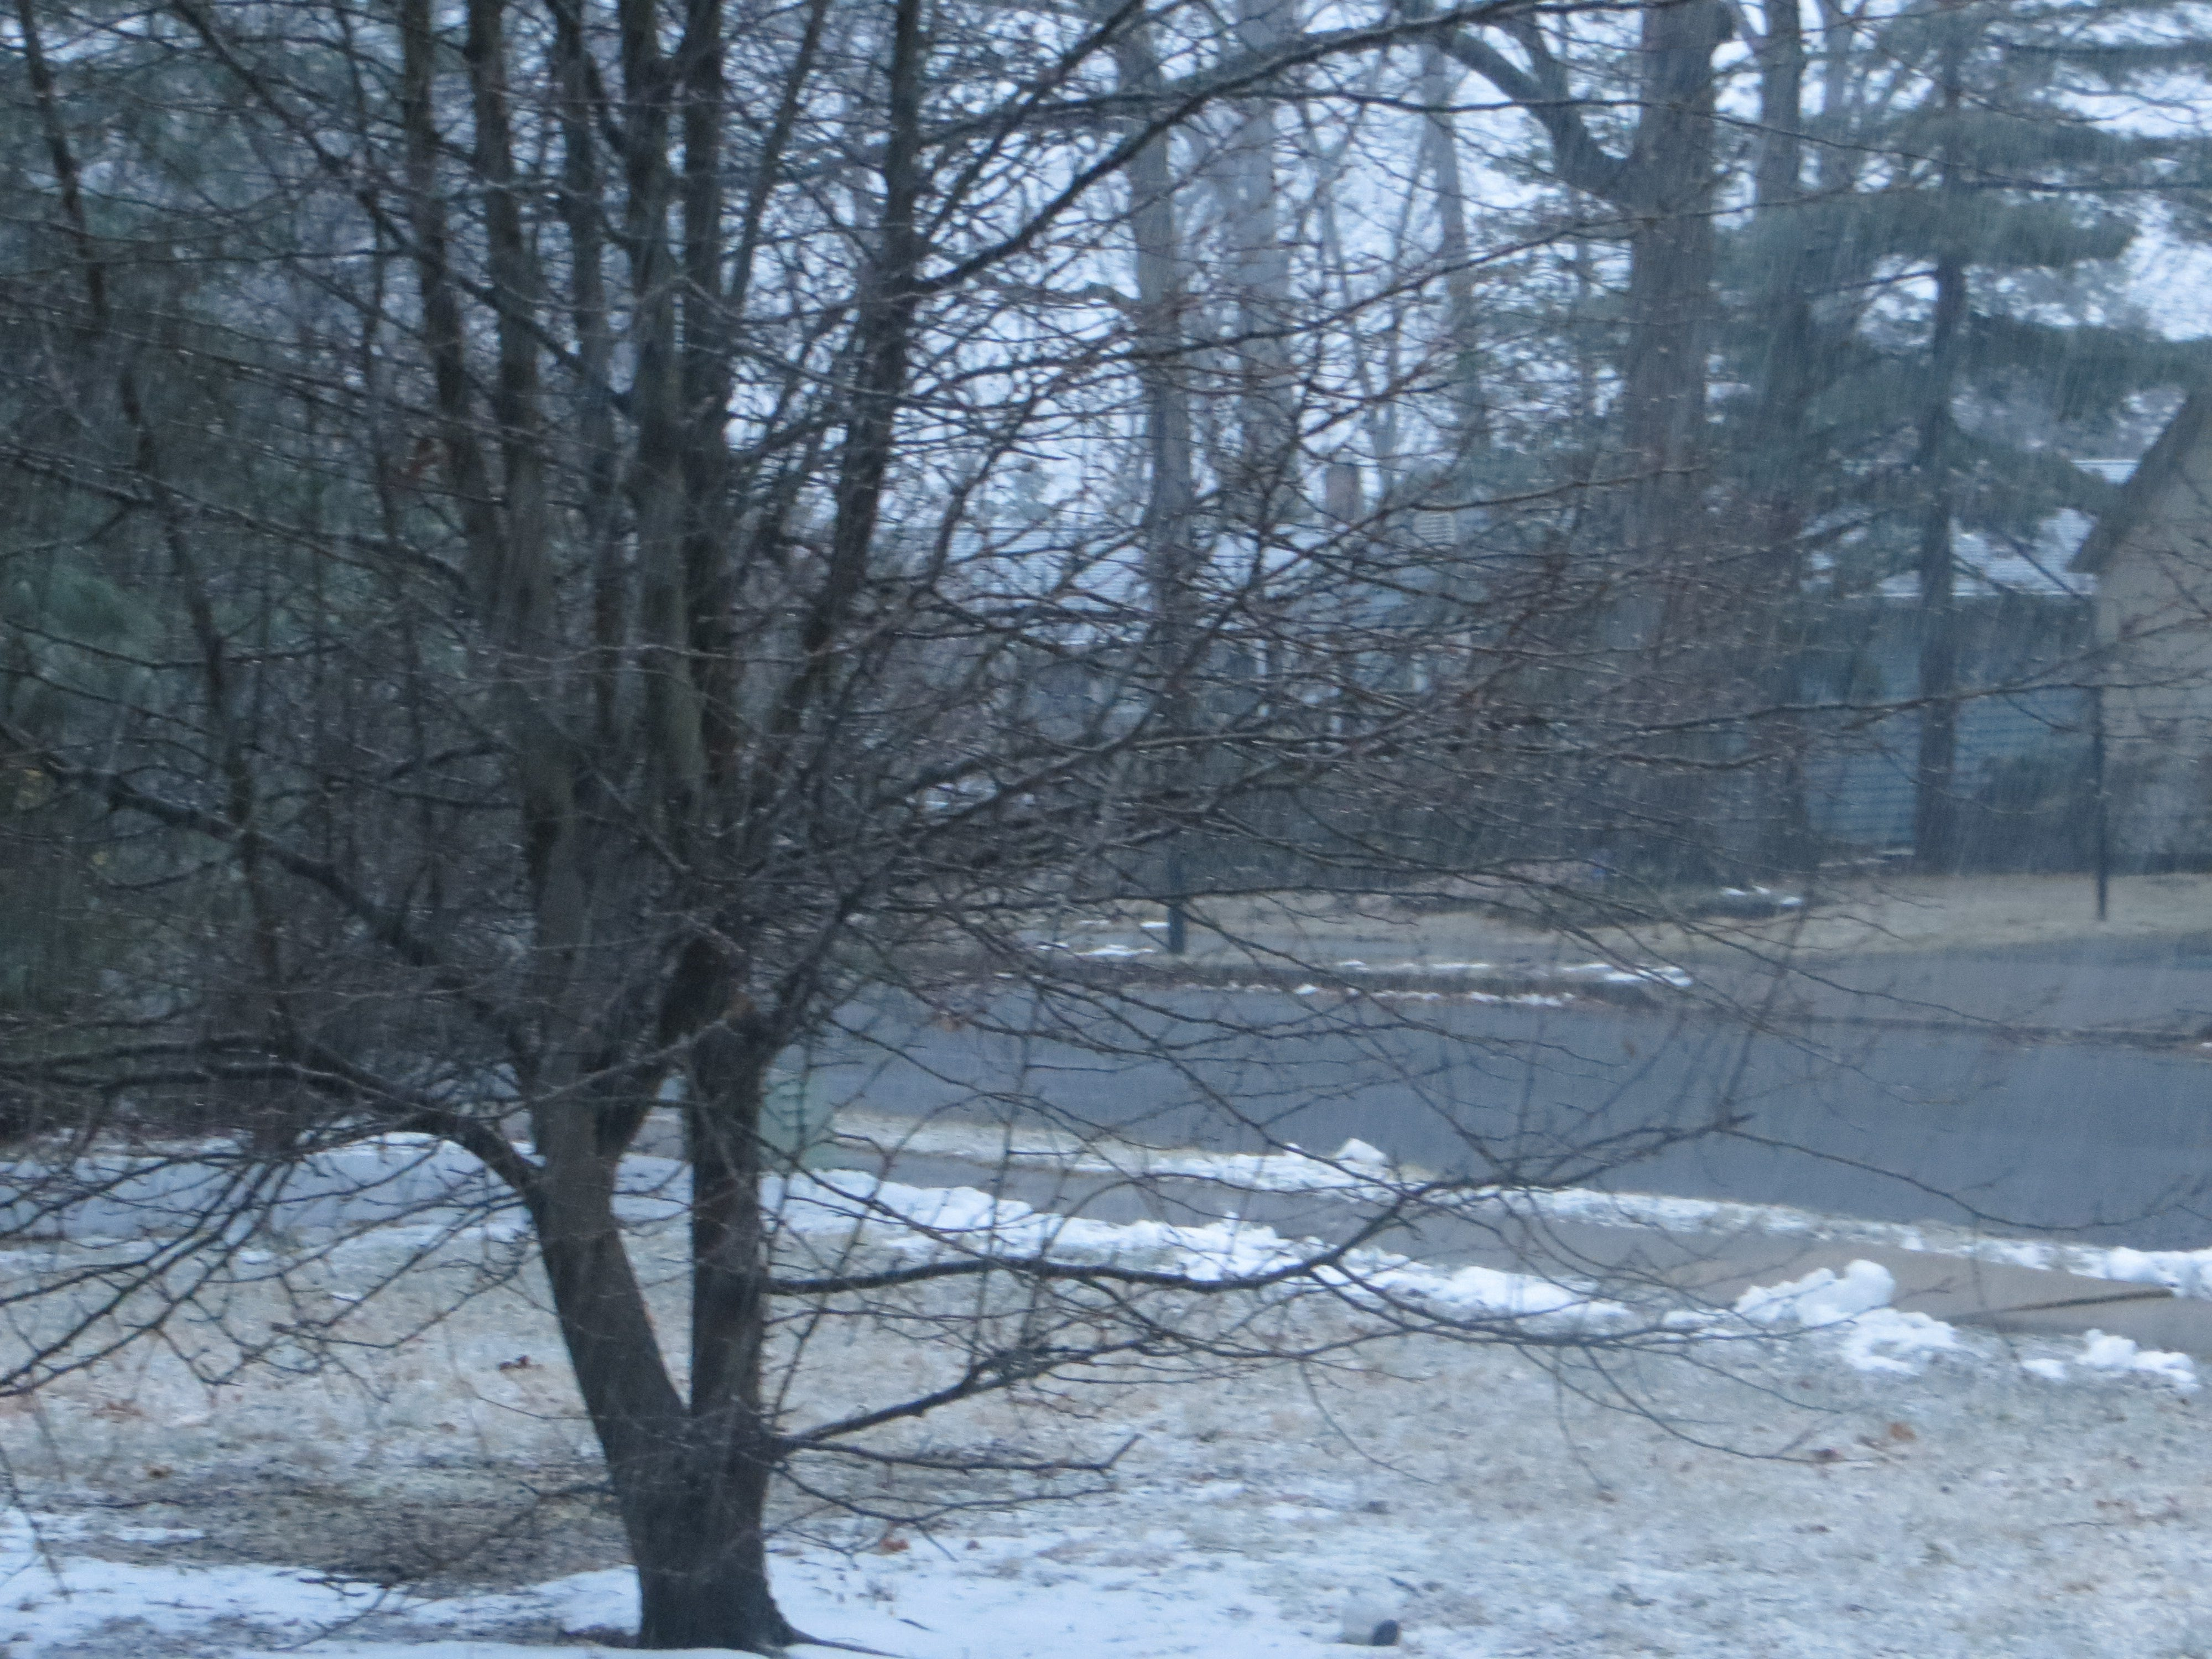 Snow begins to fall in East Brunswick around 5:45 p.m. on Sunday, March 3, 2019.